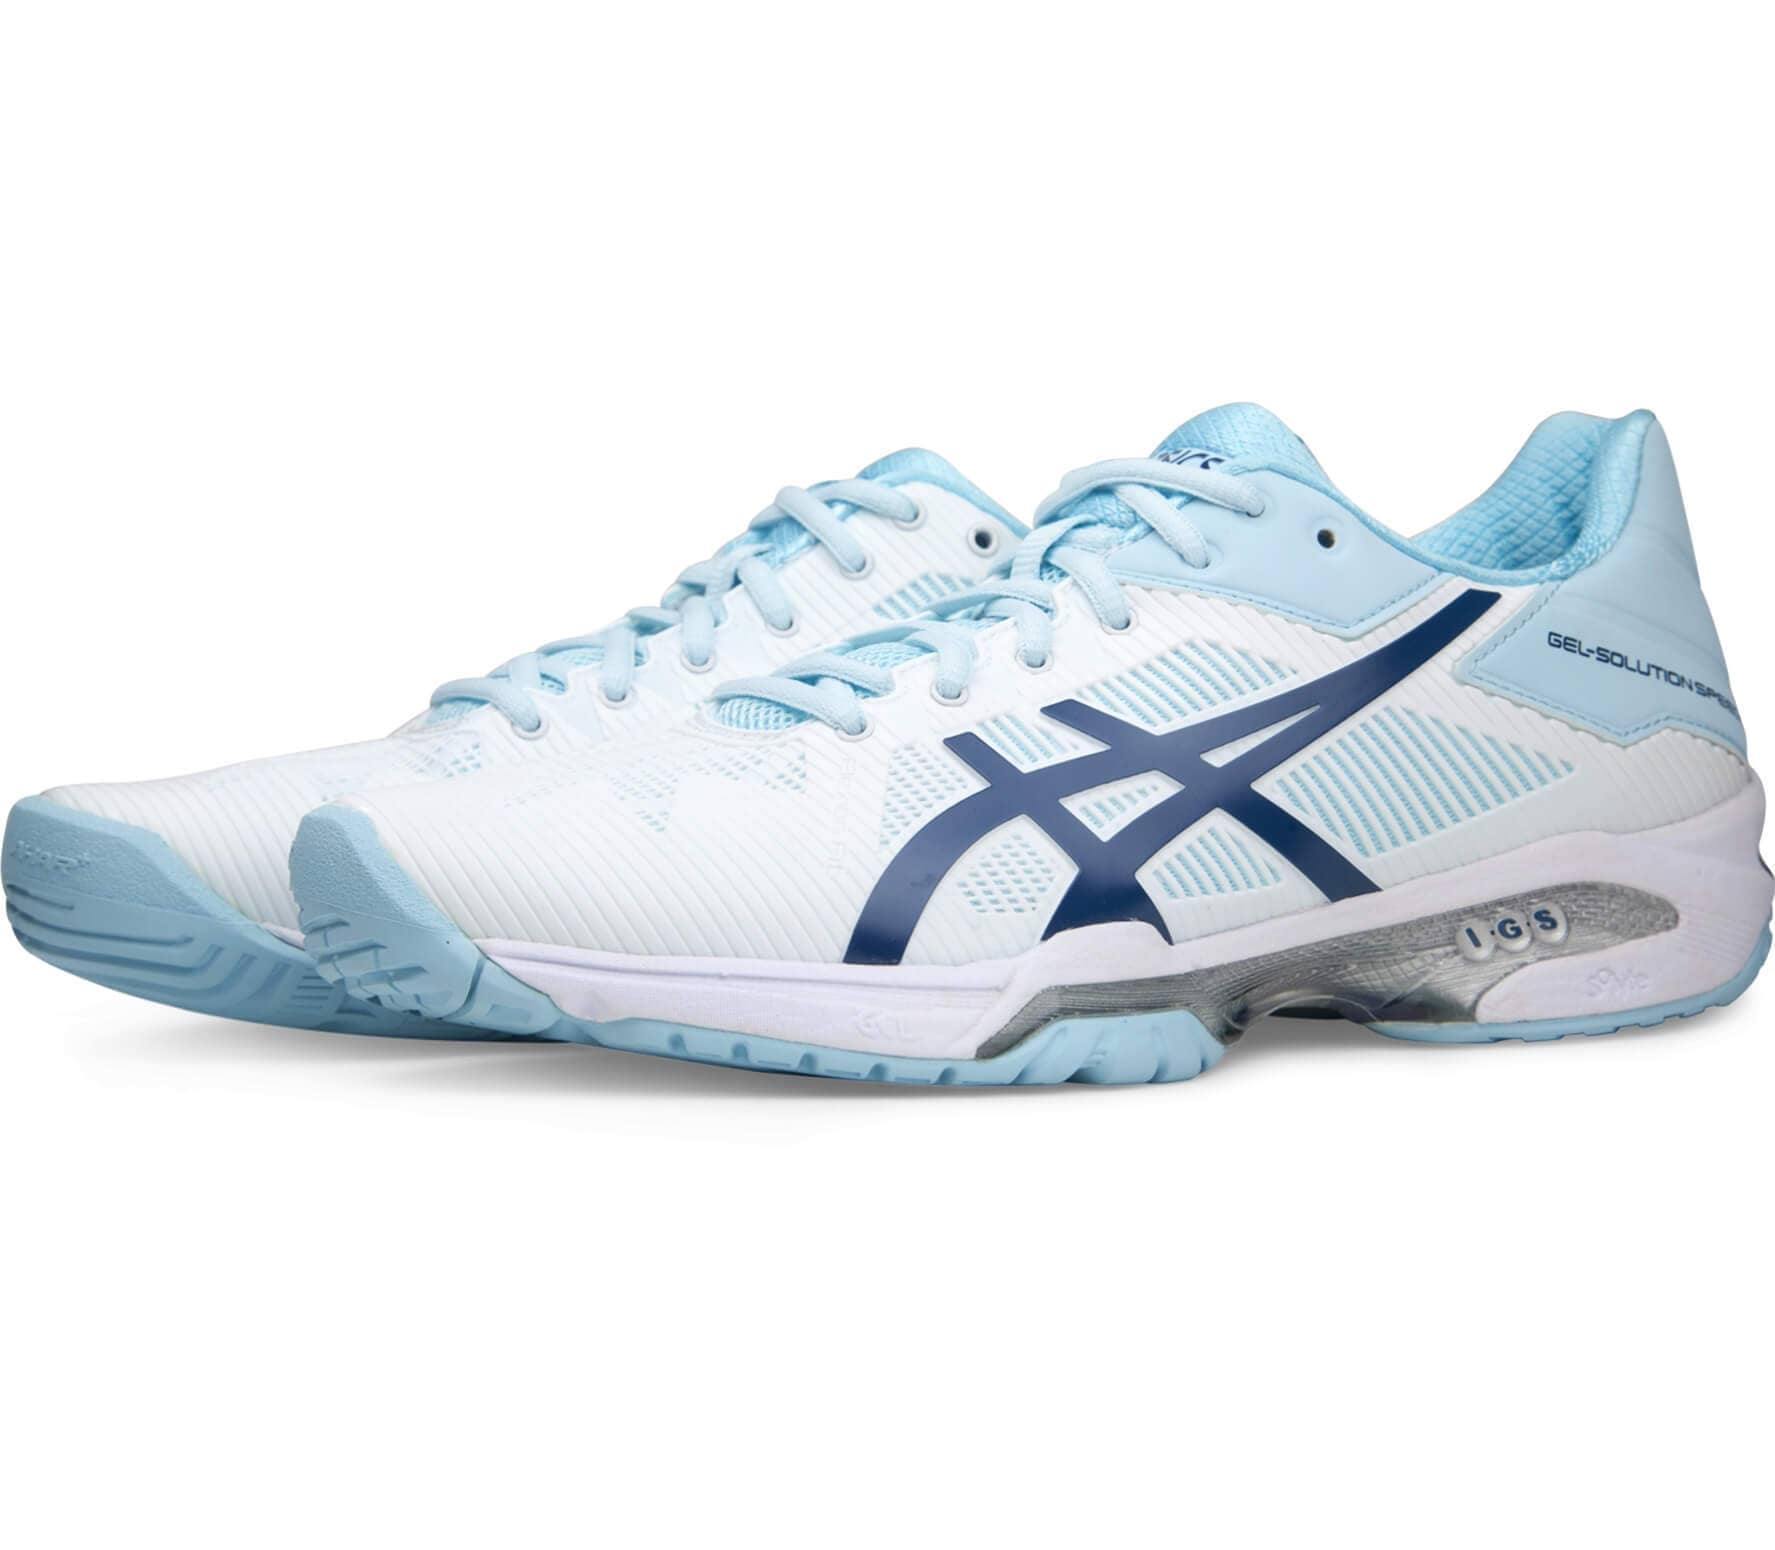 ASICS - Gel-Solution Speed 3 Damen Tennisschuh (weiß/hellblau)